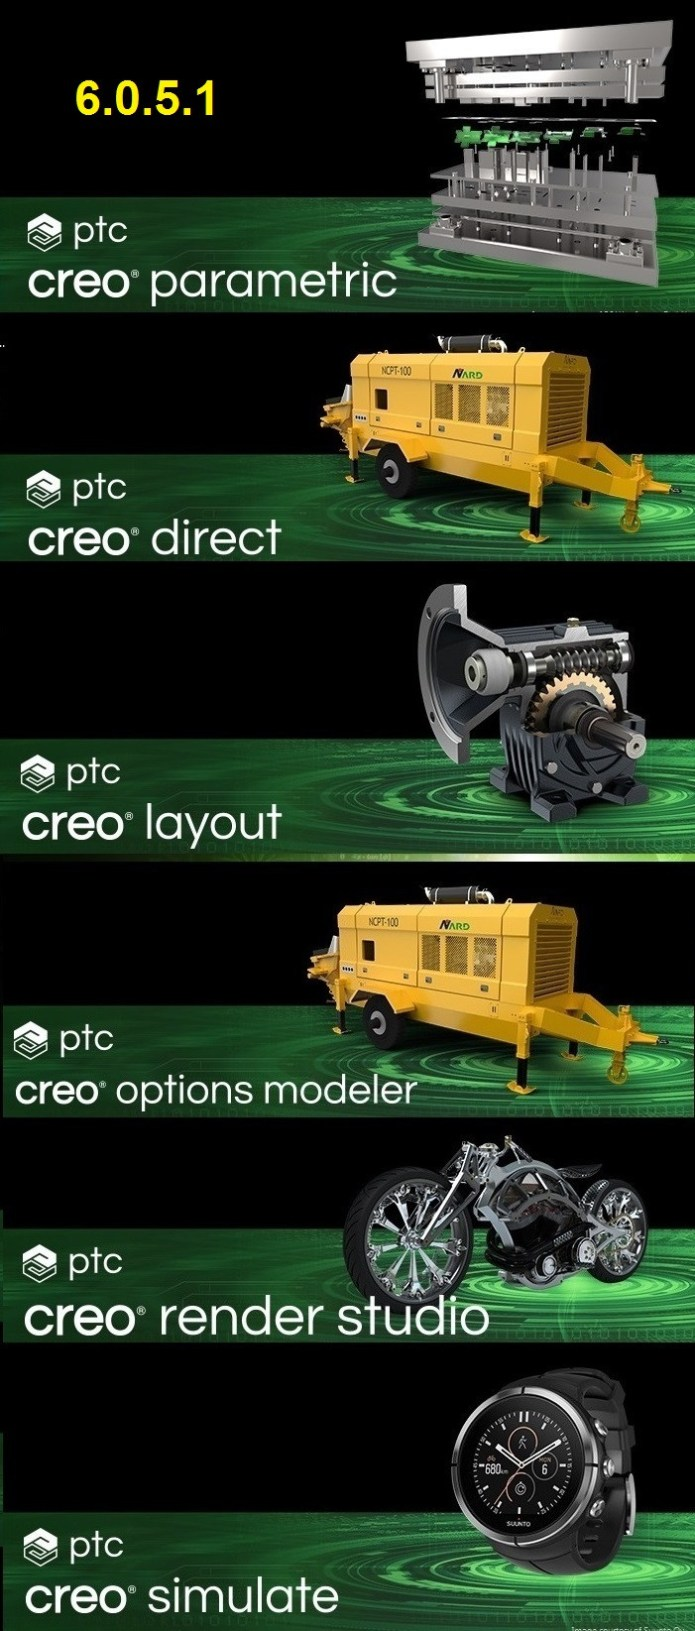 PTC Creo 6.0.5.1 x64 full license